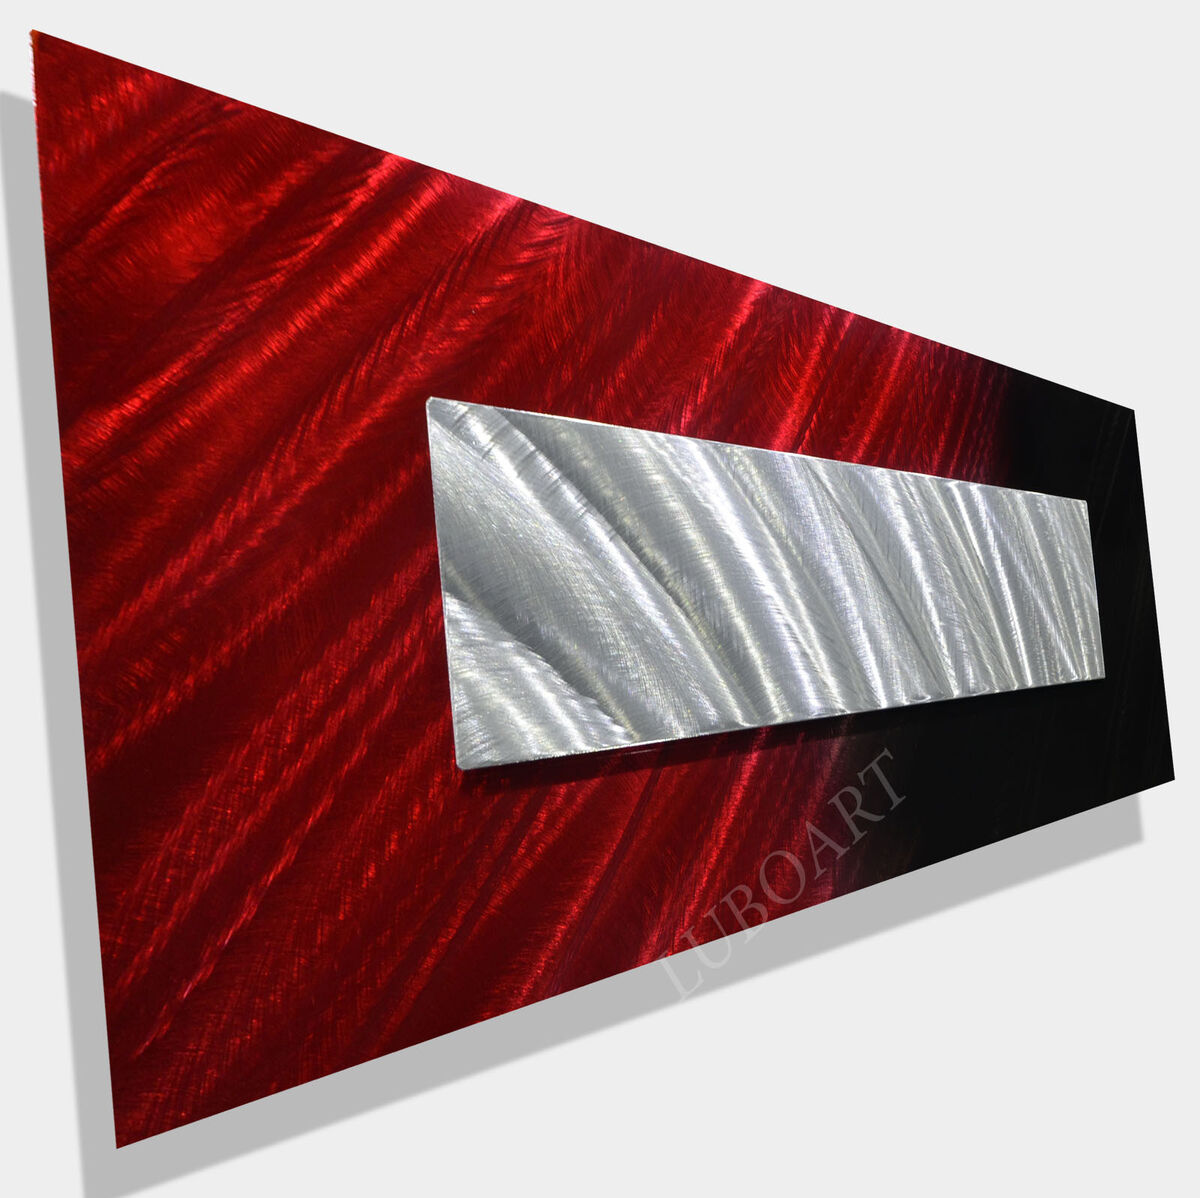 Abstract Metal Art Red Painting Contemporary Collage Modern Wall Decor Original